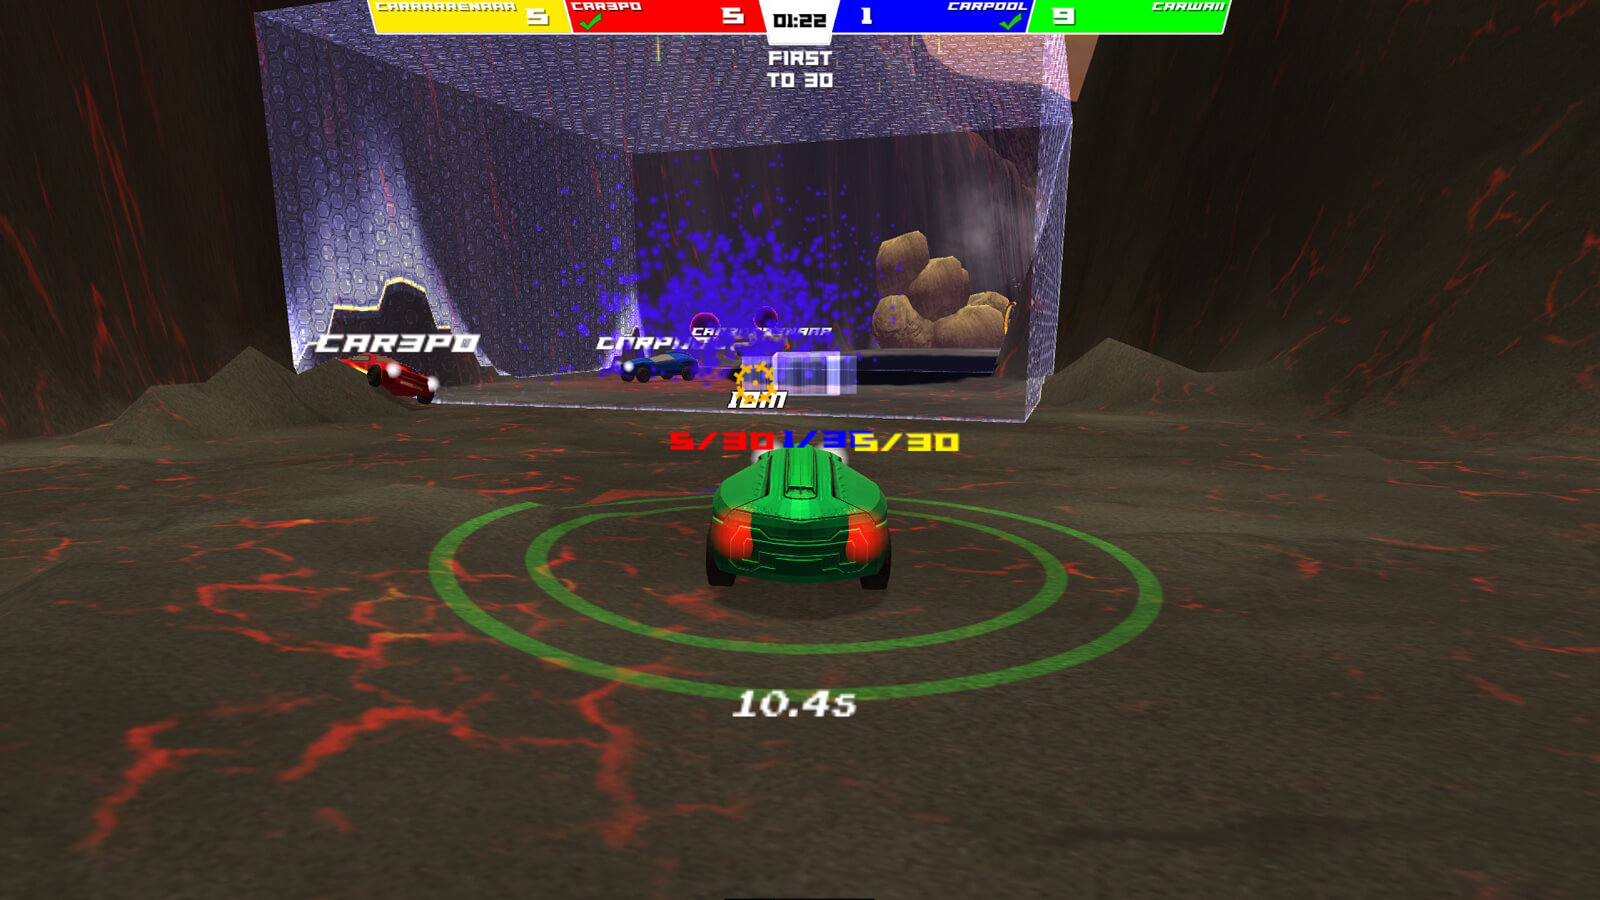 A blue car escapes a blue particle explosion as a green car sits in the foreground